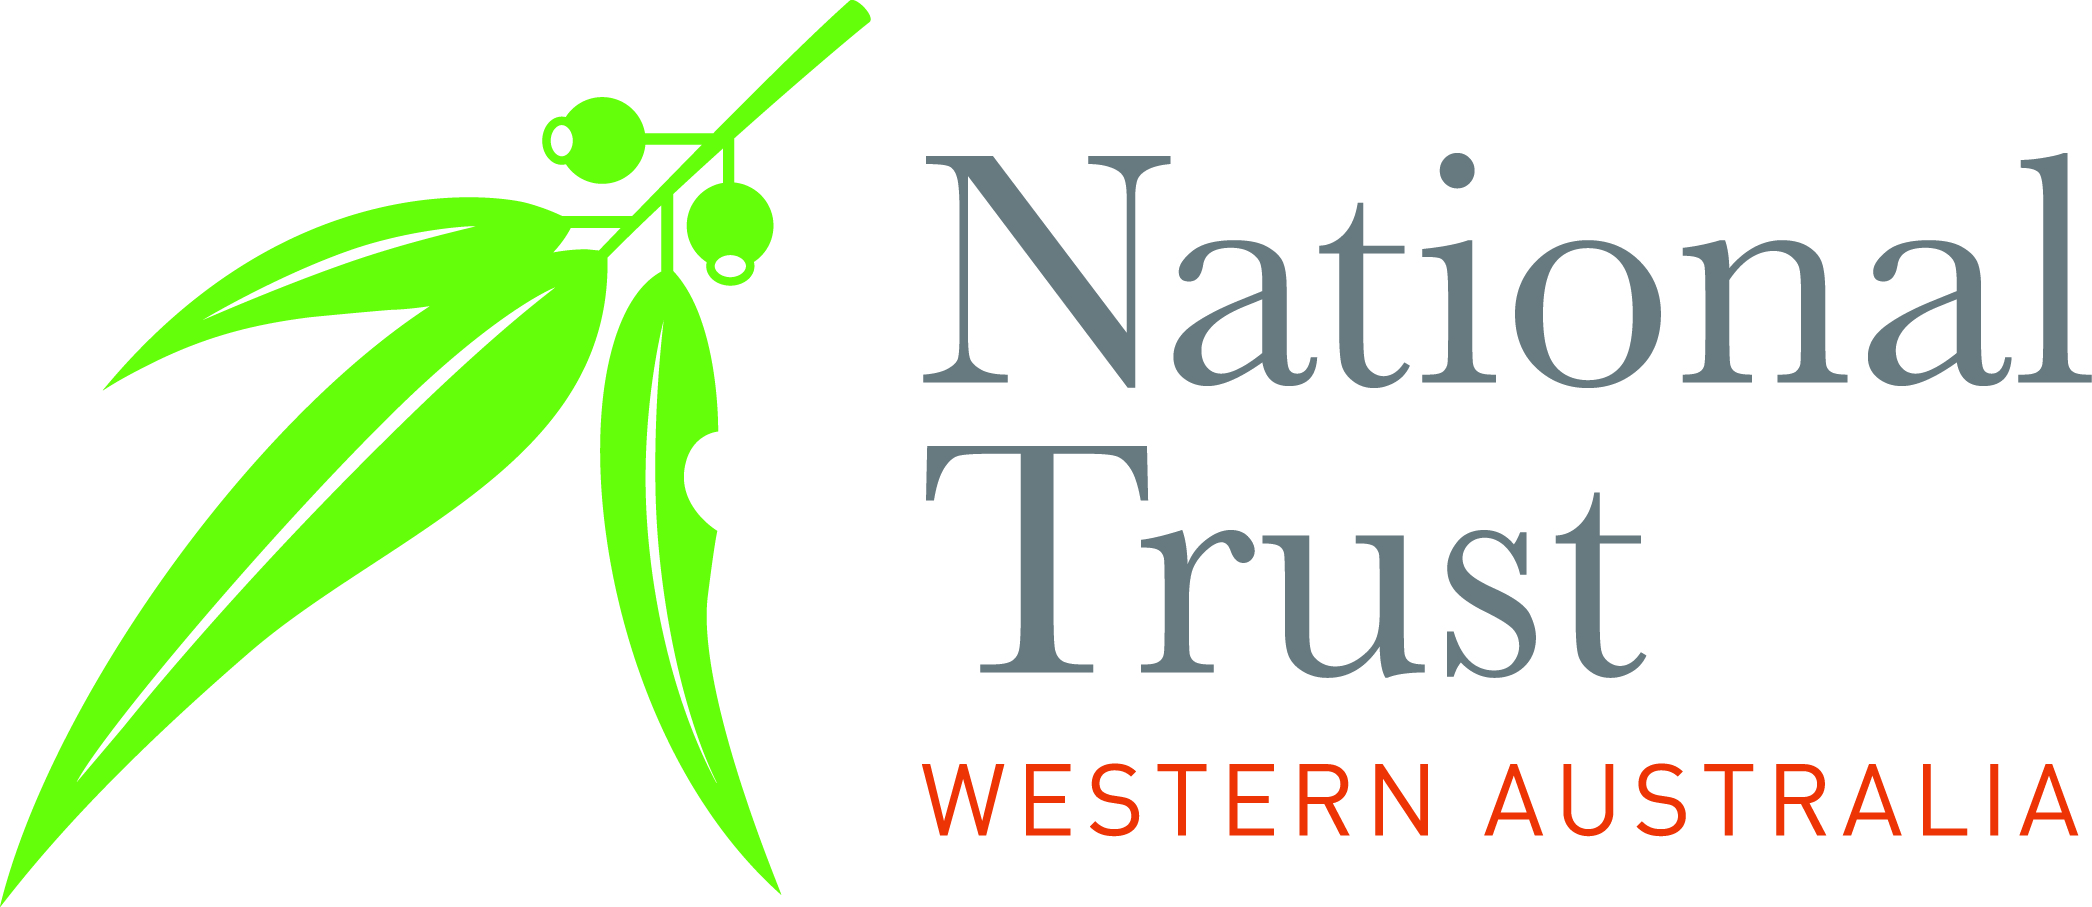 National trust of Western Australia Logo